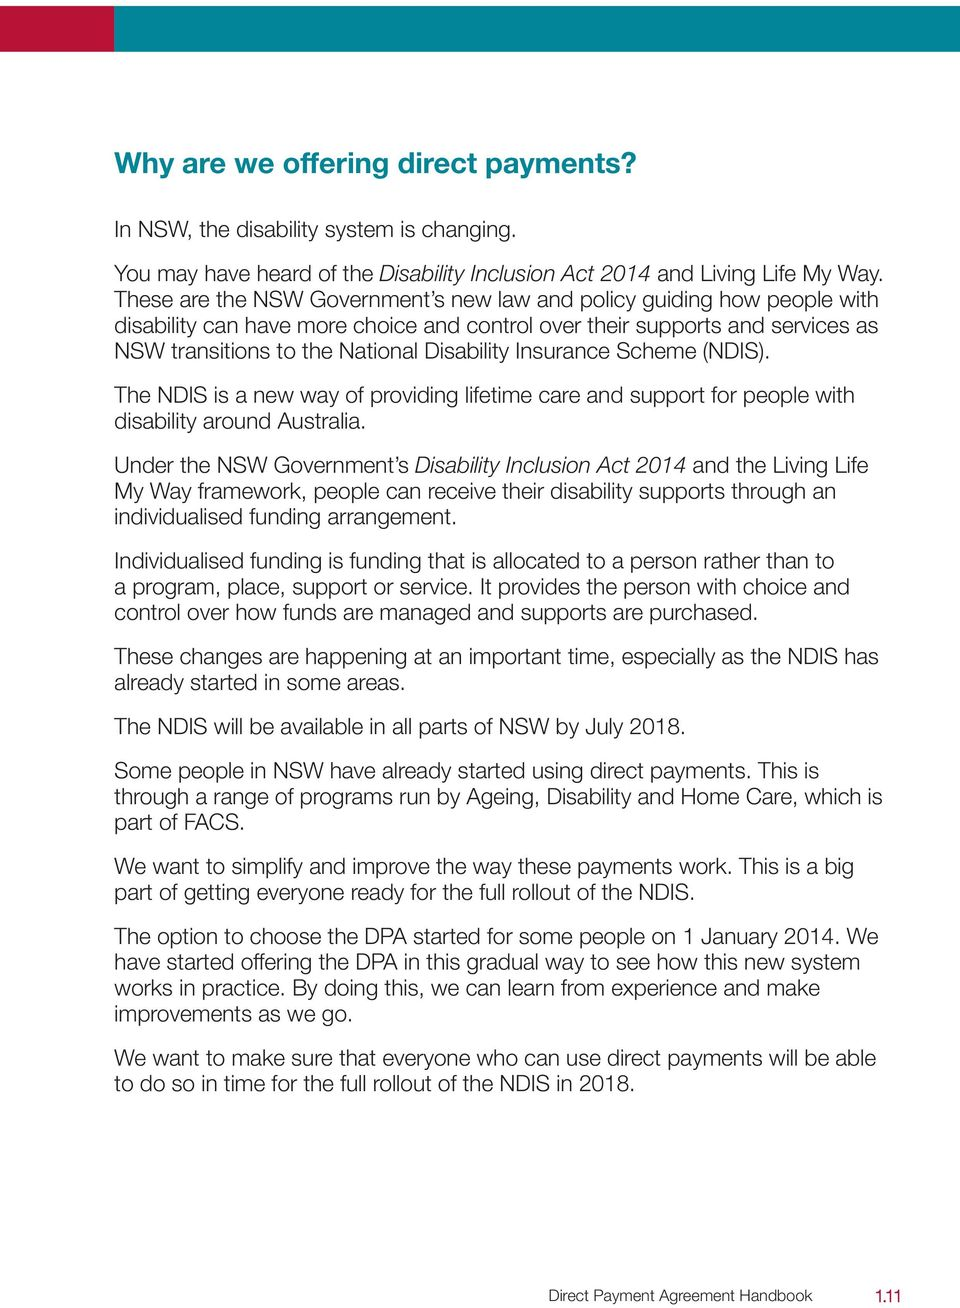 Insurance Scheme (NDIS). The NDIS is a new way of providing lifetime care and support for people with disability around Australia.